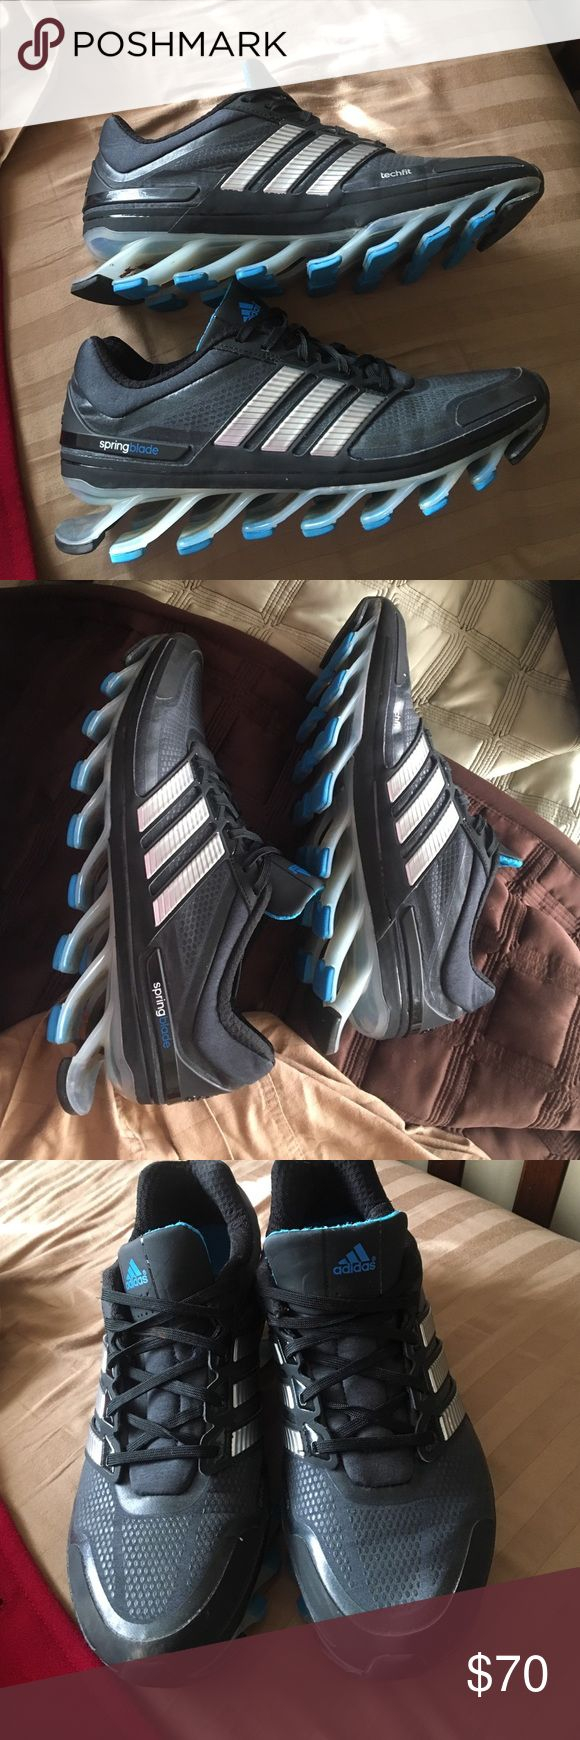 Adidas Springblades Price negotiable, just make an offer! Like new, men's size 8.5! Only worn a few times. Adidas Shoes Athletic Shoes